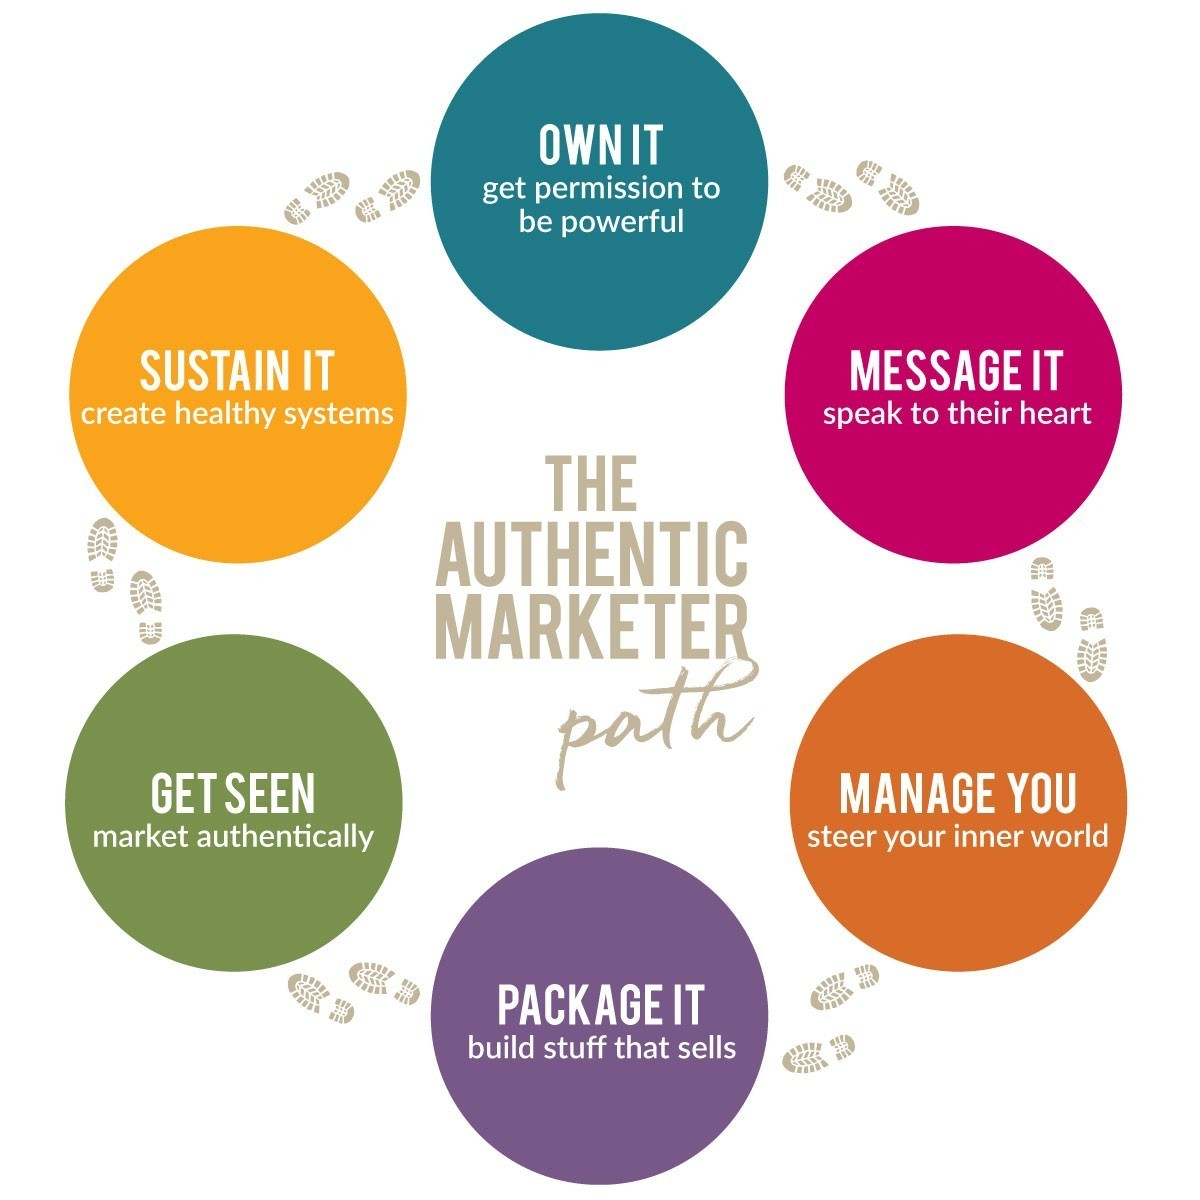 The Authentic Marketer Path